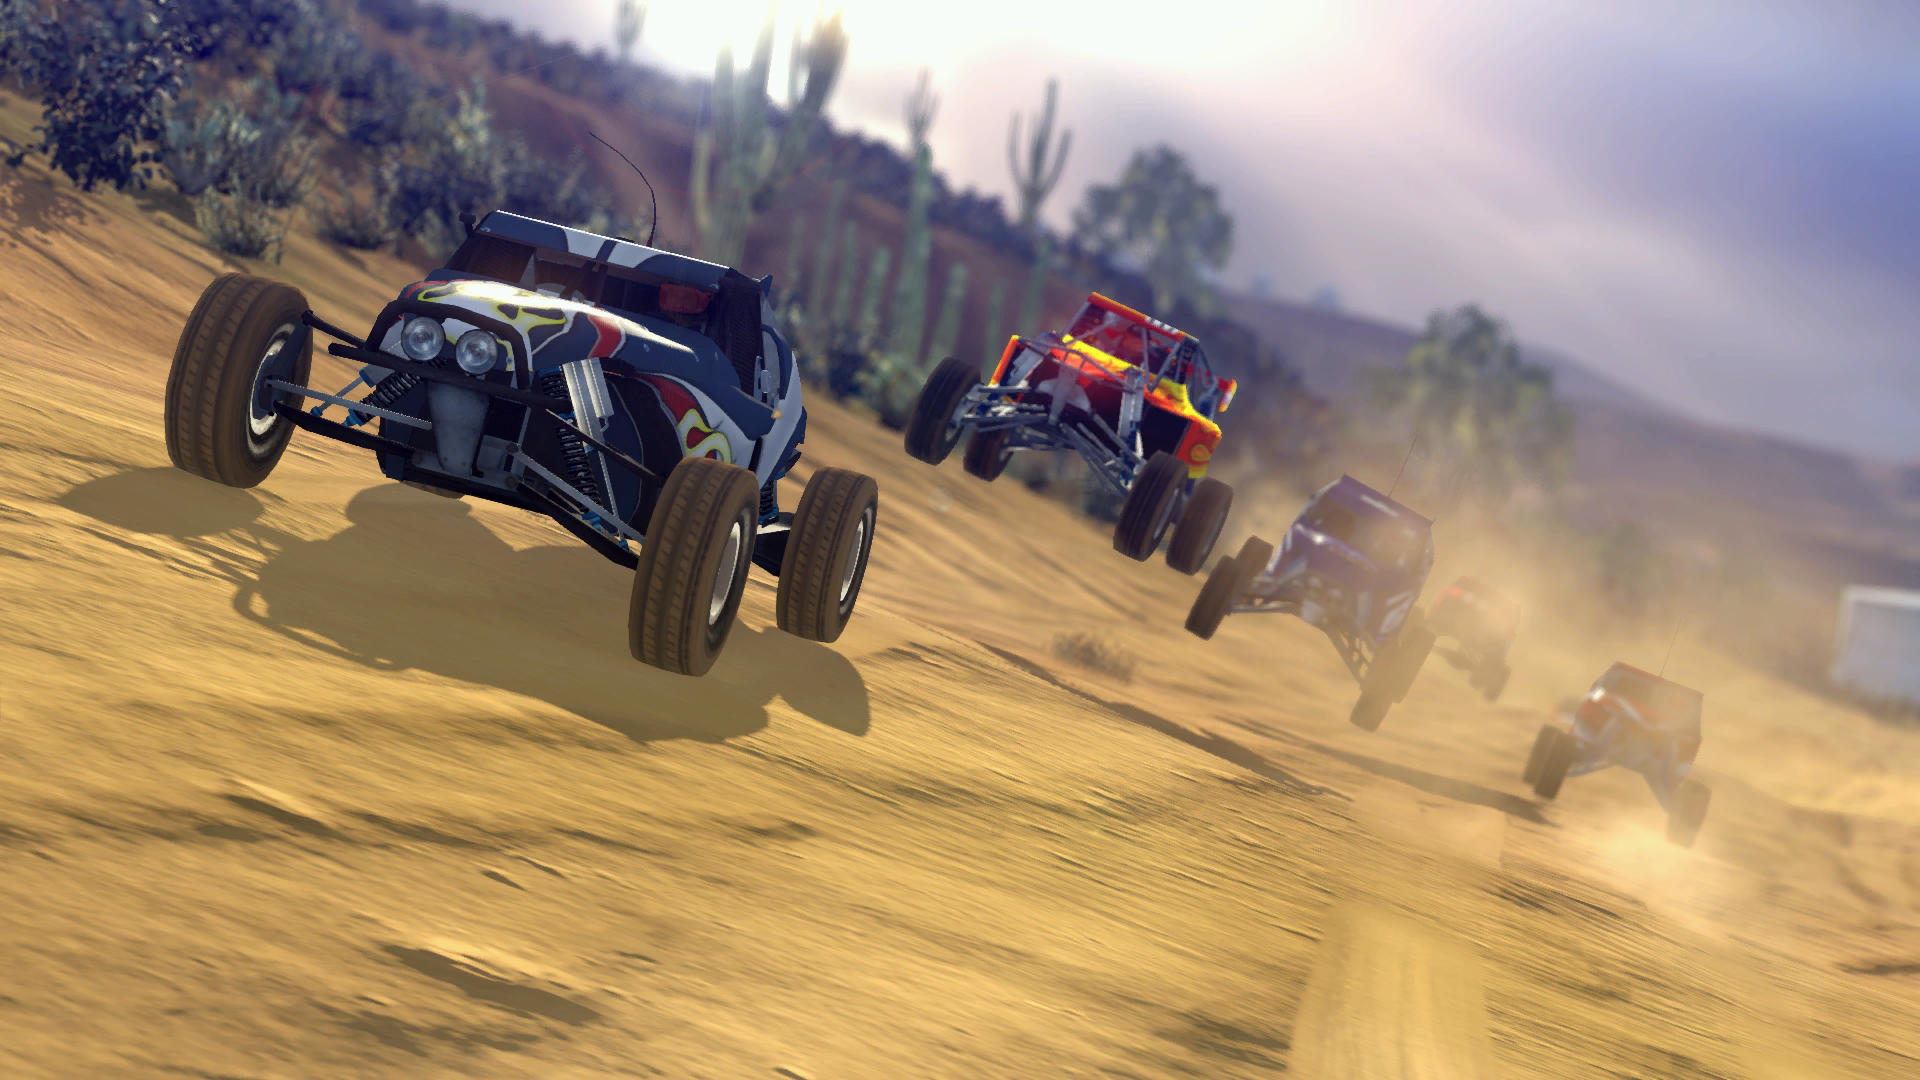 download baja edge of control hd cracked by codex include all dlc and latest update co-op racing games mirrorace multiup